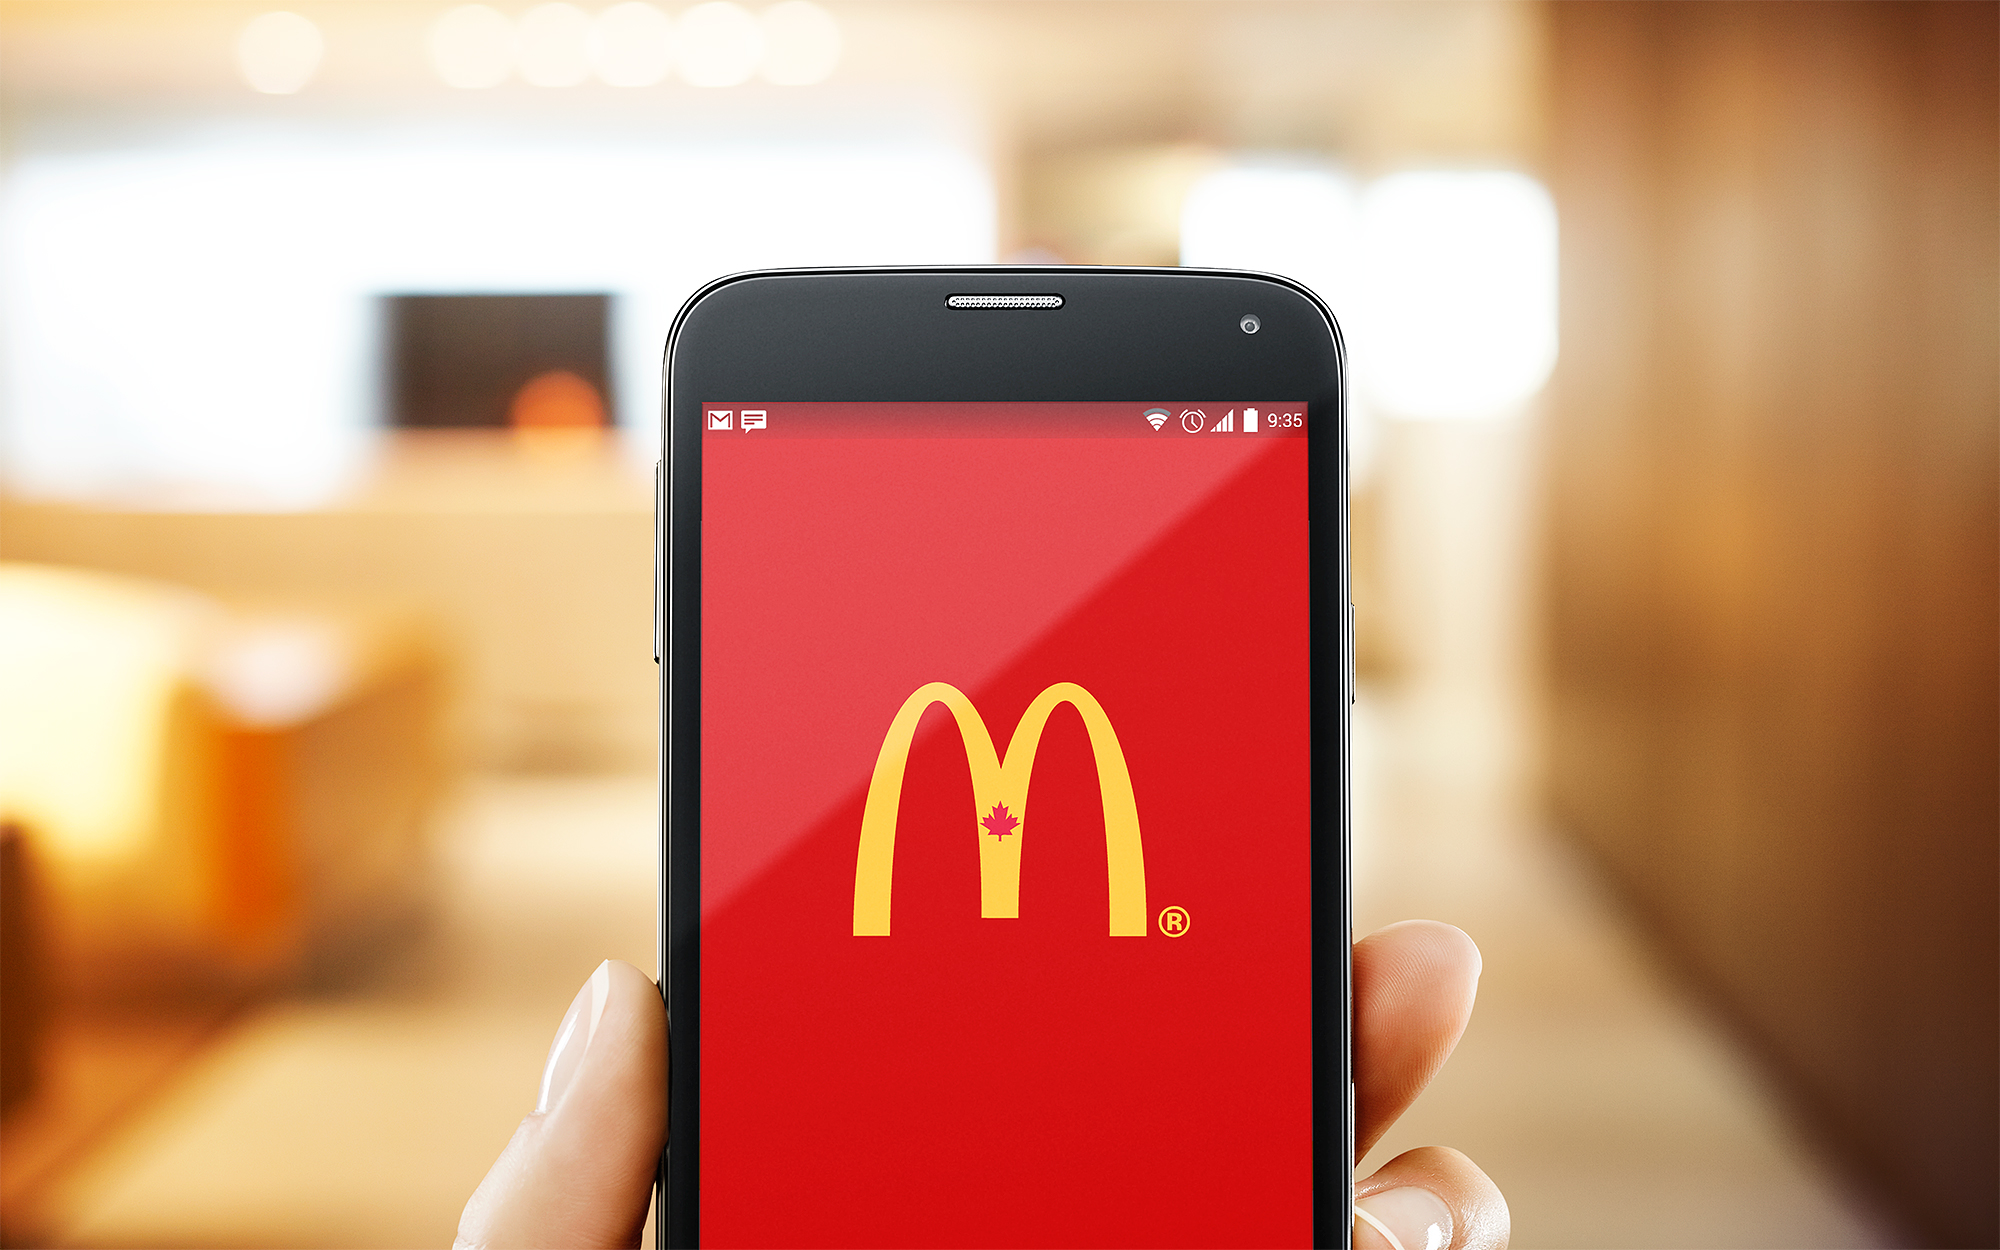 McDONALDS_PHONE_COUPON01